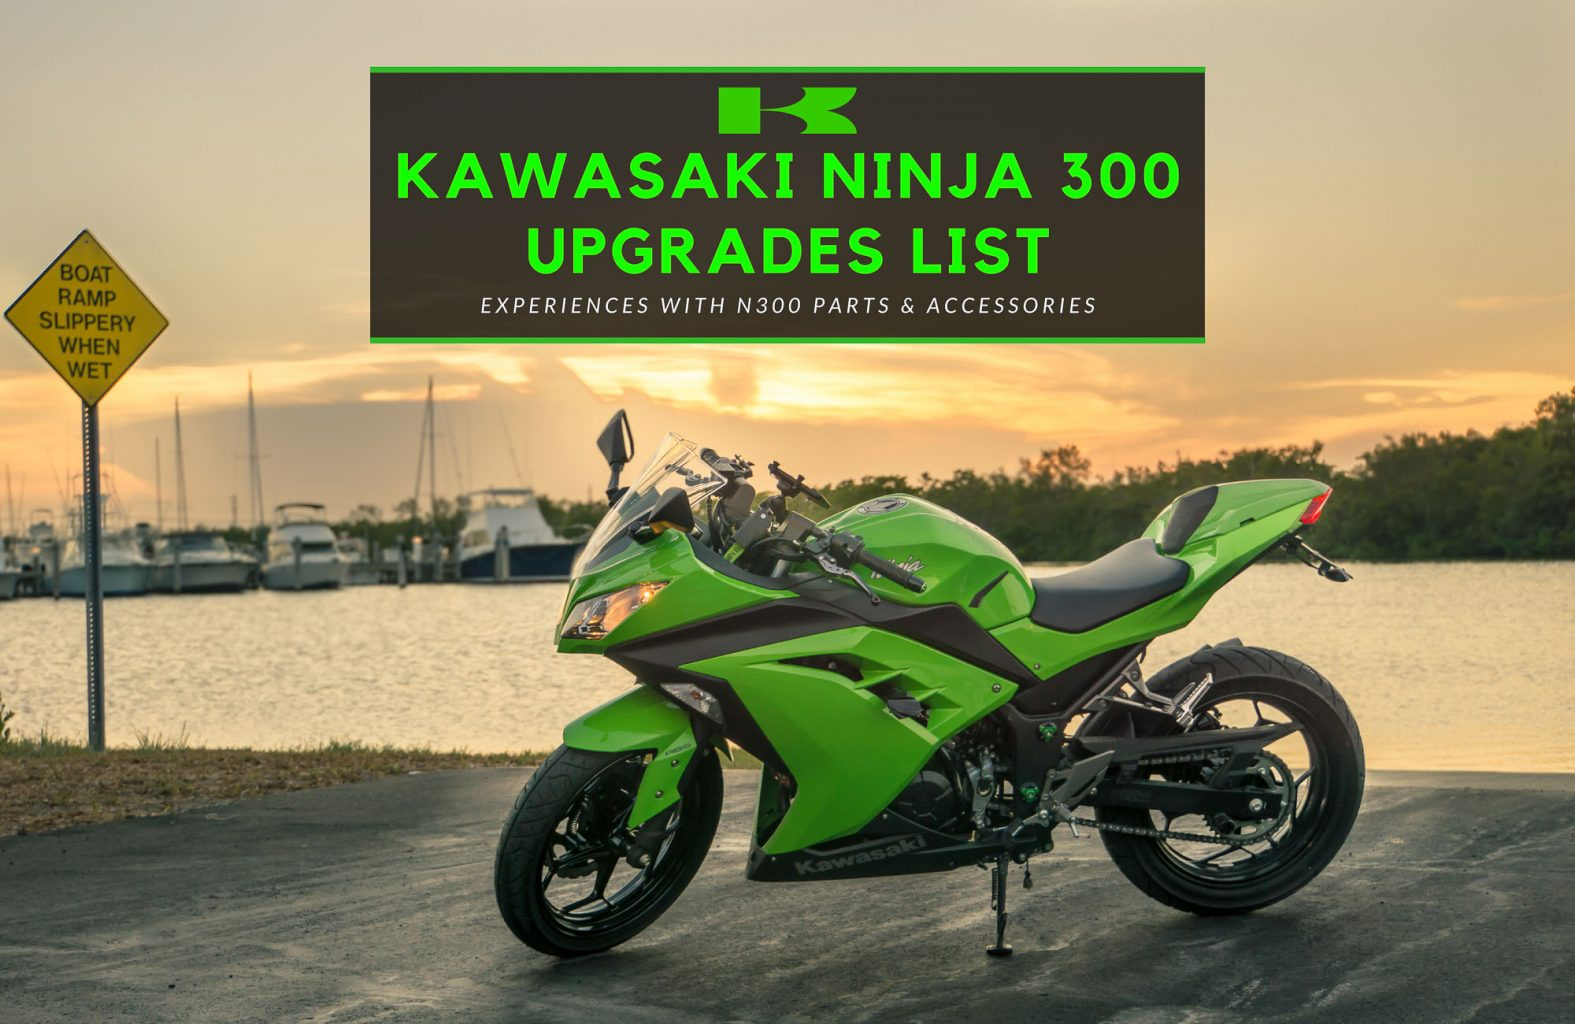 Kawasaki Ninja 300 Mods List Worthy Upgrades Accessories For Bikes